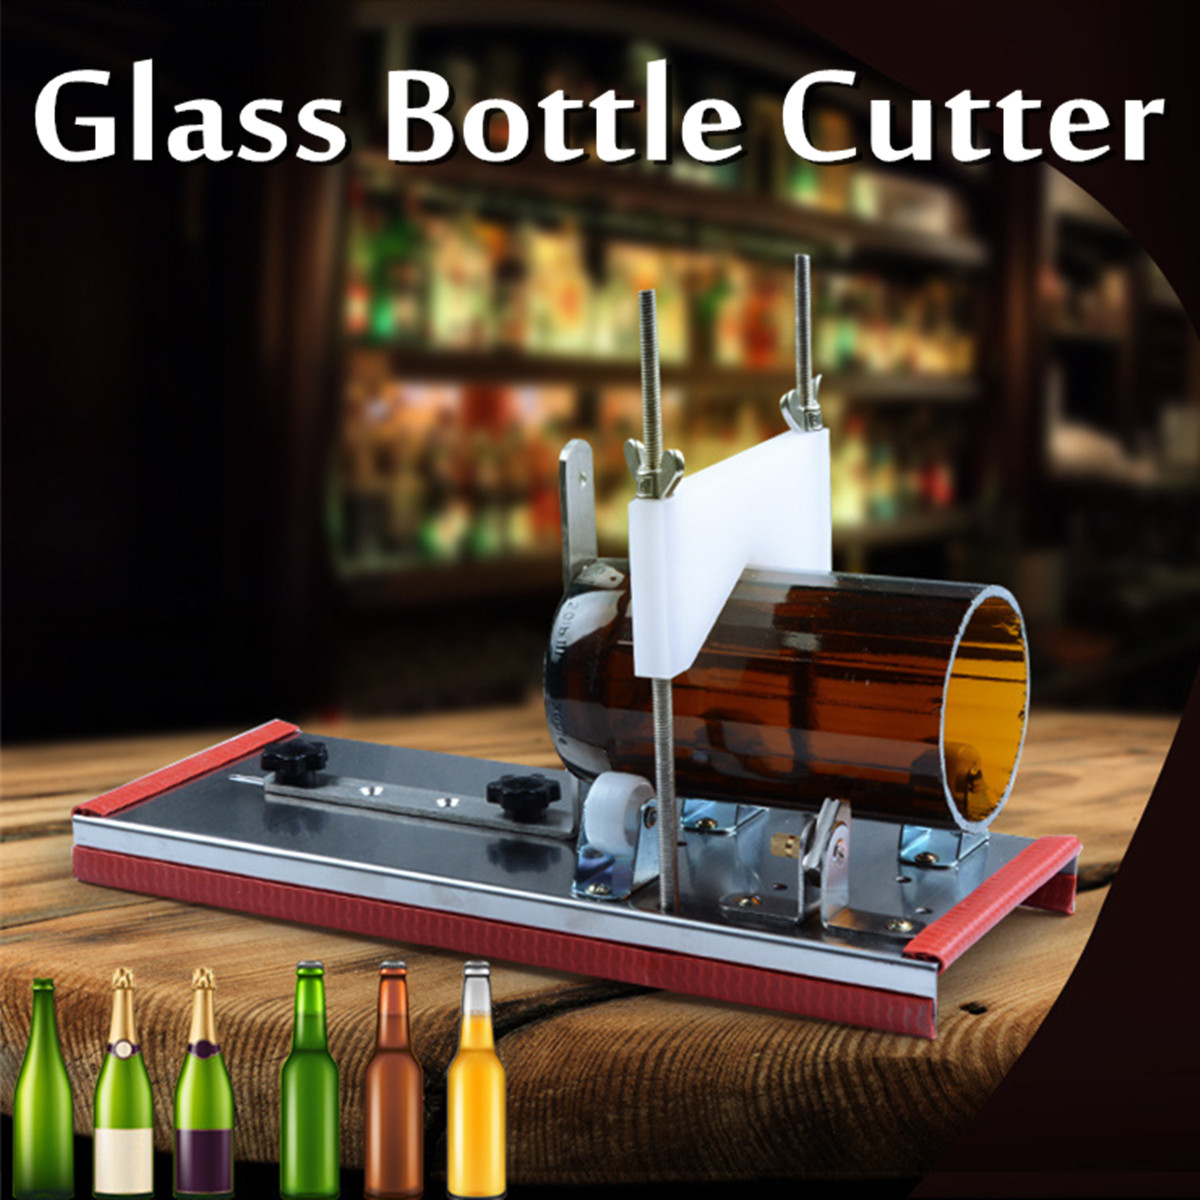 DIY Recycle Cutting Tool Kit Glass Bottle Cutter 2-10mm Beer Wine Jar Accurate Cutting Machine Stainless Steel Smoothly Cutting diy carbon steel oval frame cutting dies